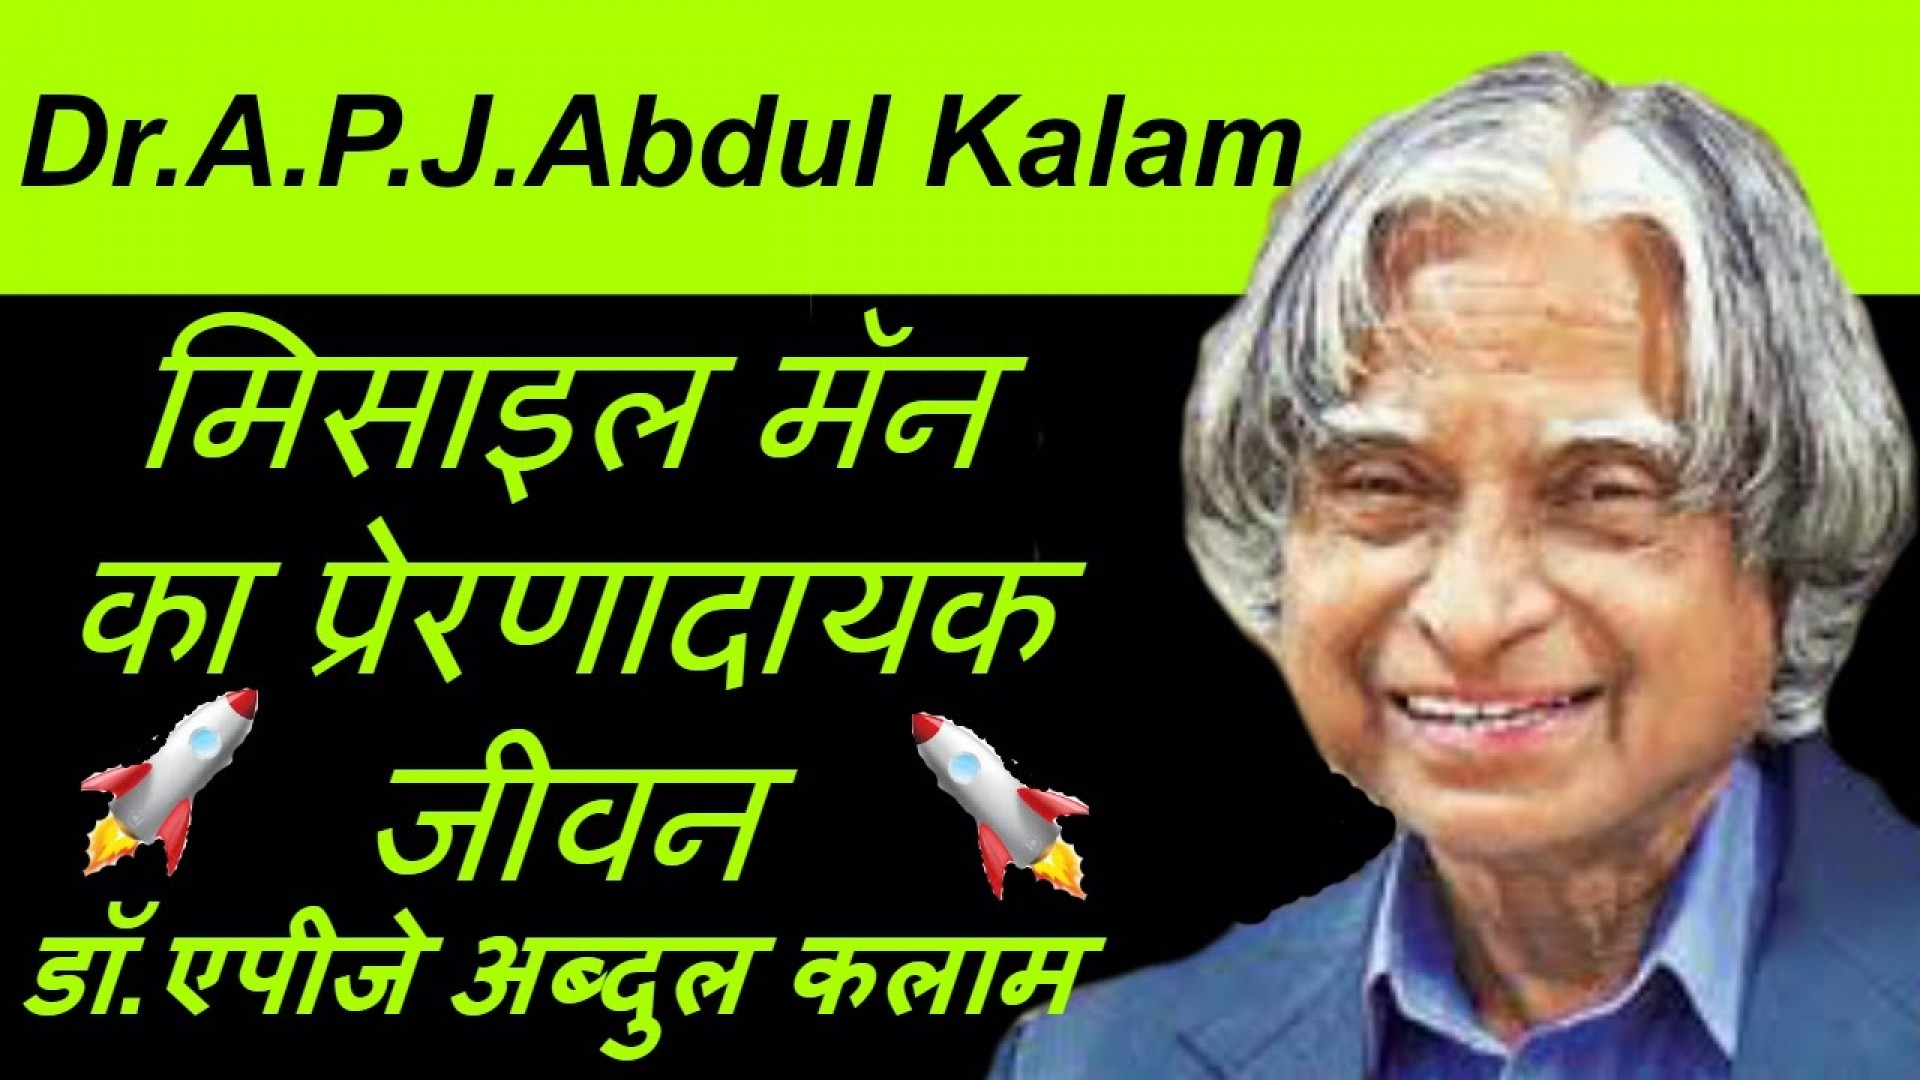 009 Abdul Kalam My Inspiration Essay Maxresdefault Exceptional In English 400 Words Hindi 1920